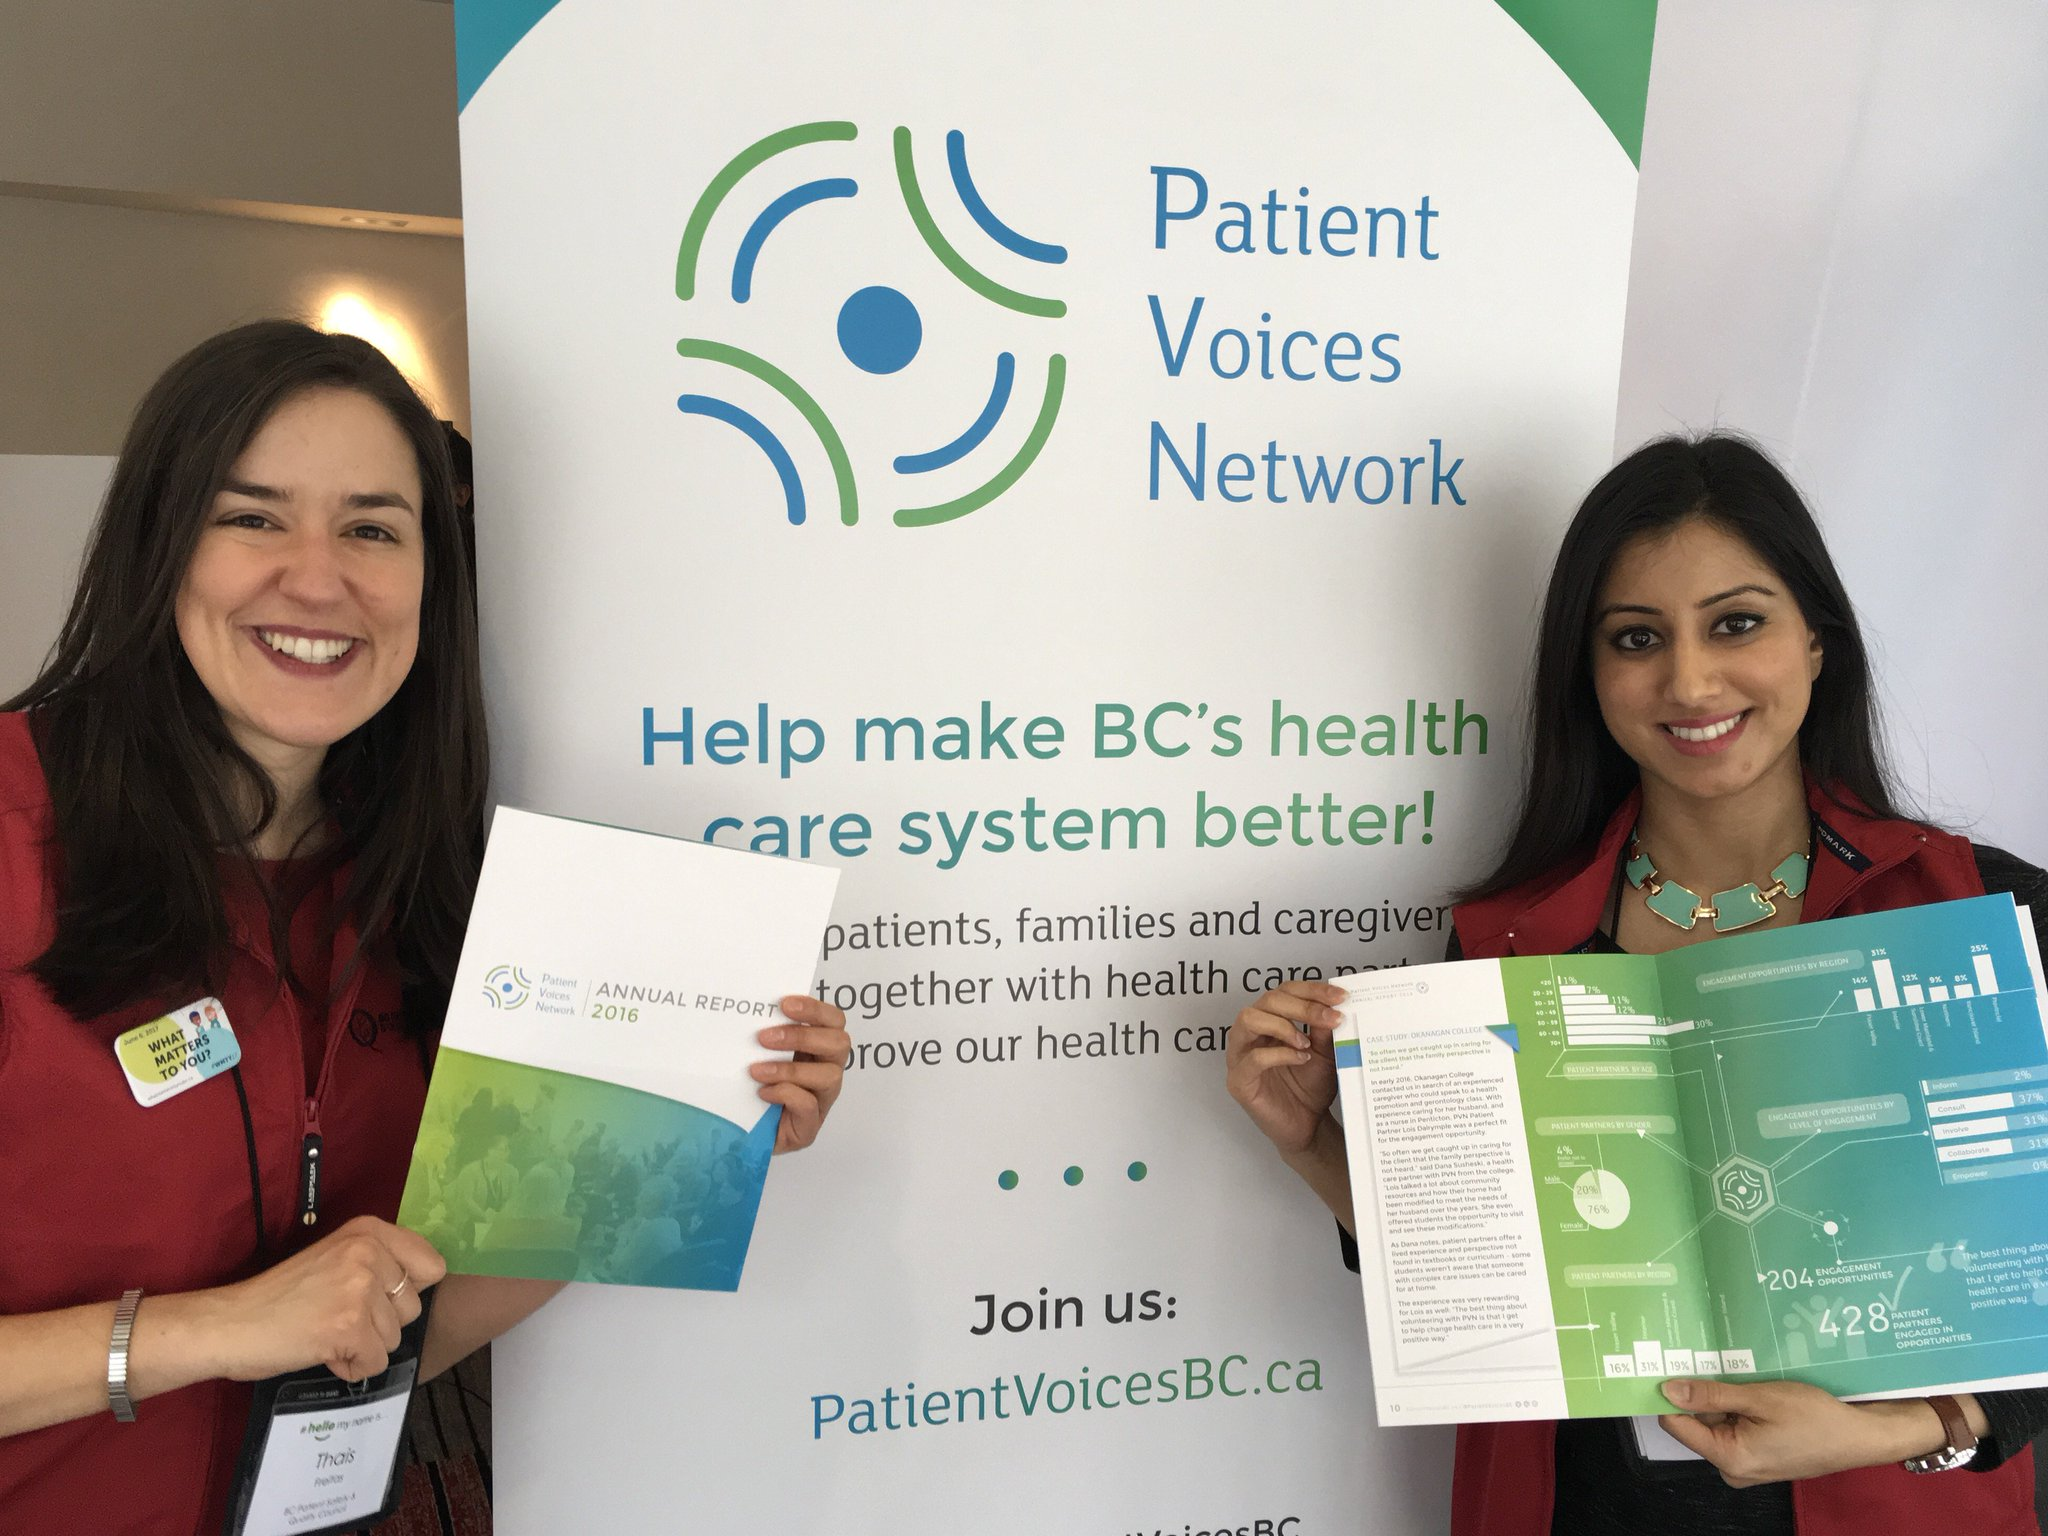 We're launching our first Annual Report at #QF17, w/ lots of info on what PVN was up to in our first year w/ the @BCPSQC! https://t.co/bBsaaiky0P